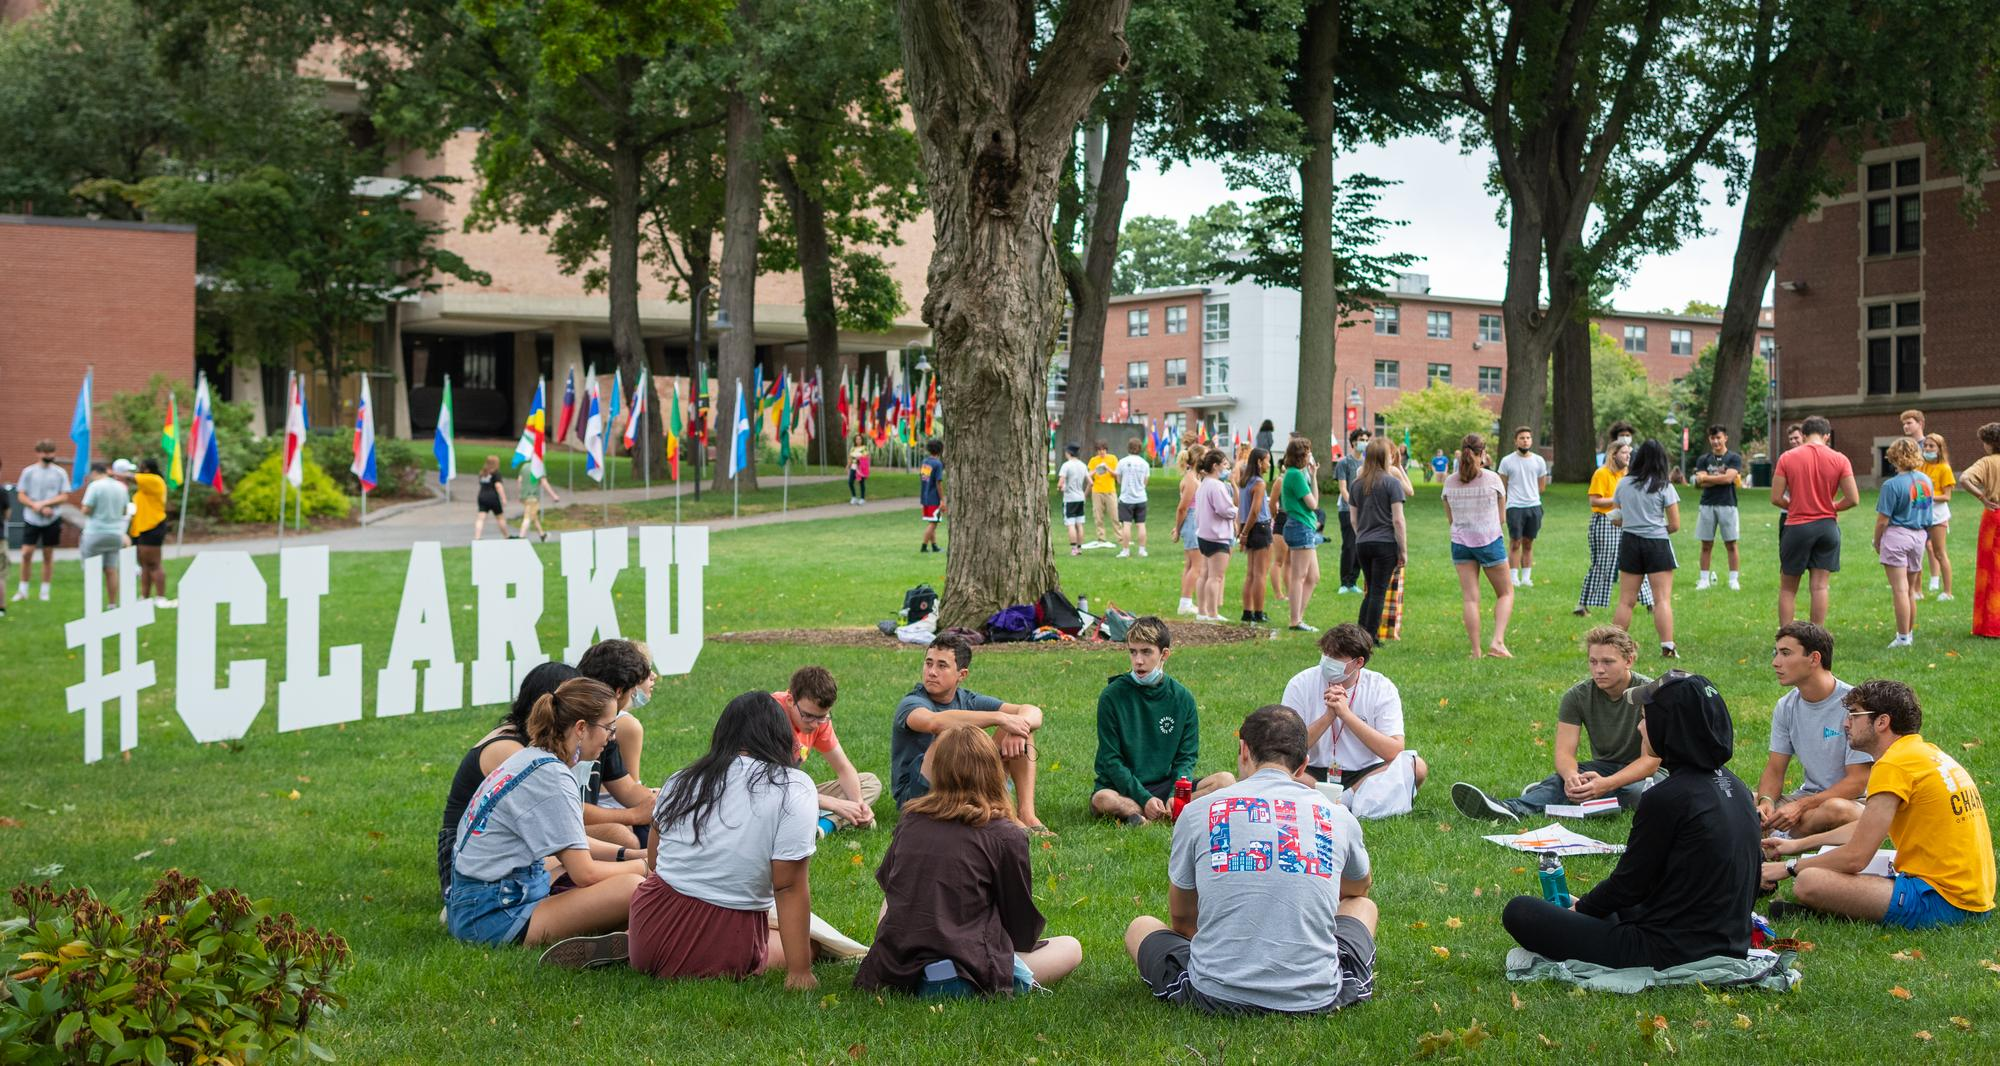 students sit in circle on campus green next to #CLARKU letters